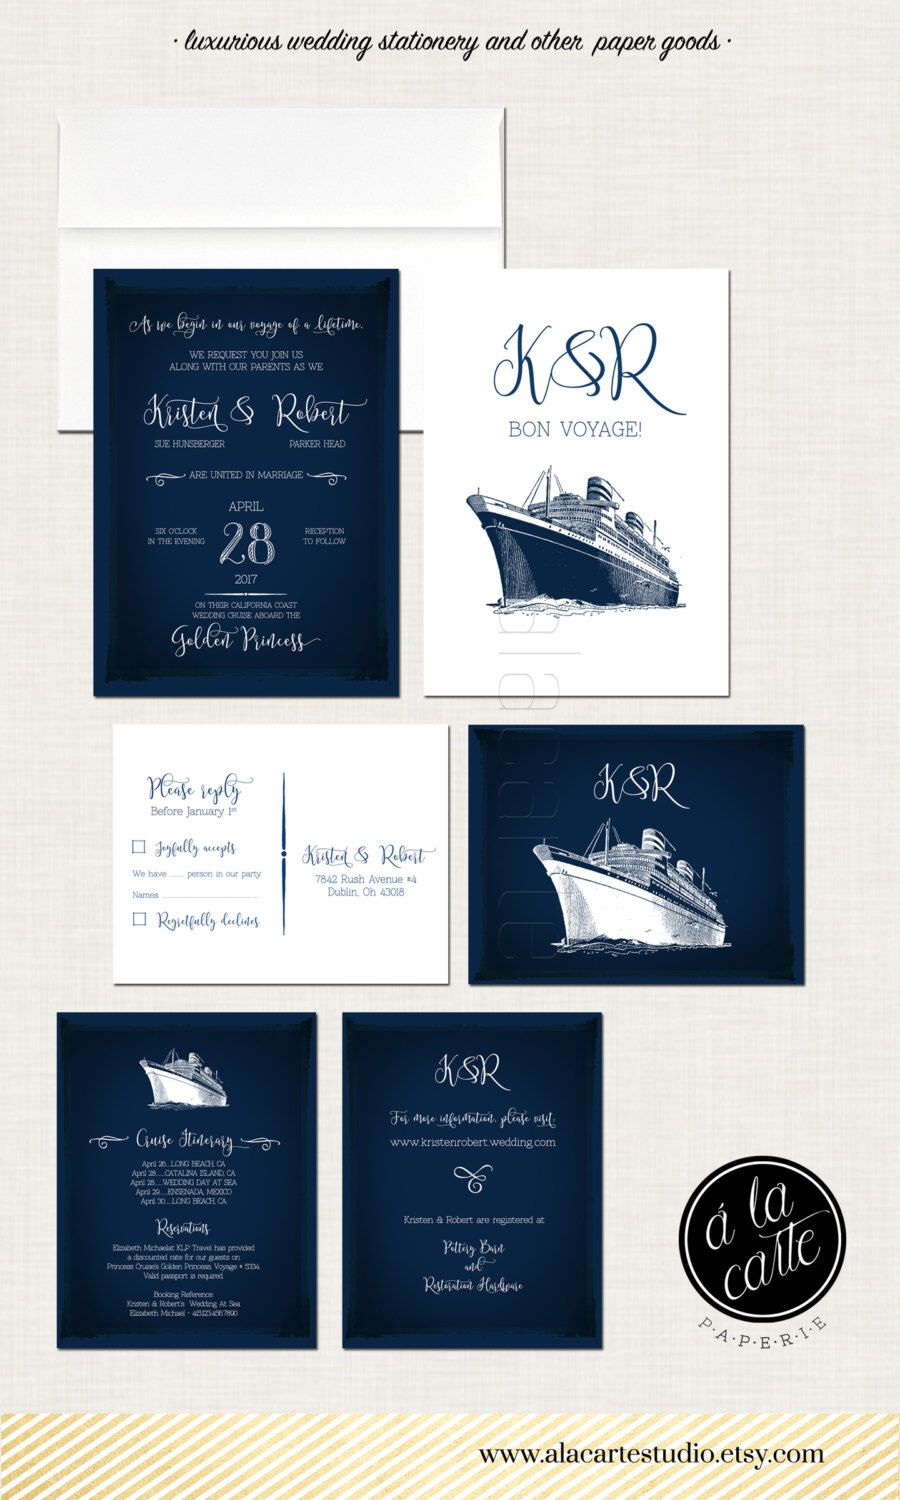 cruise ship wedding invitation rsvp info card destination